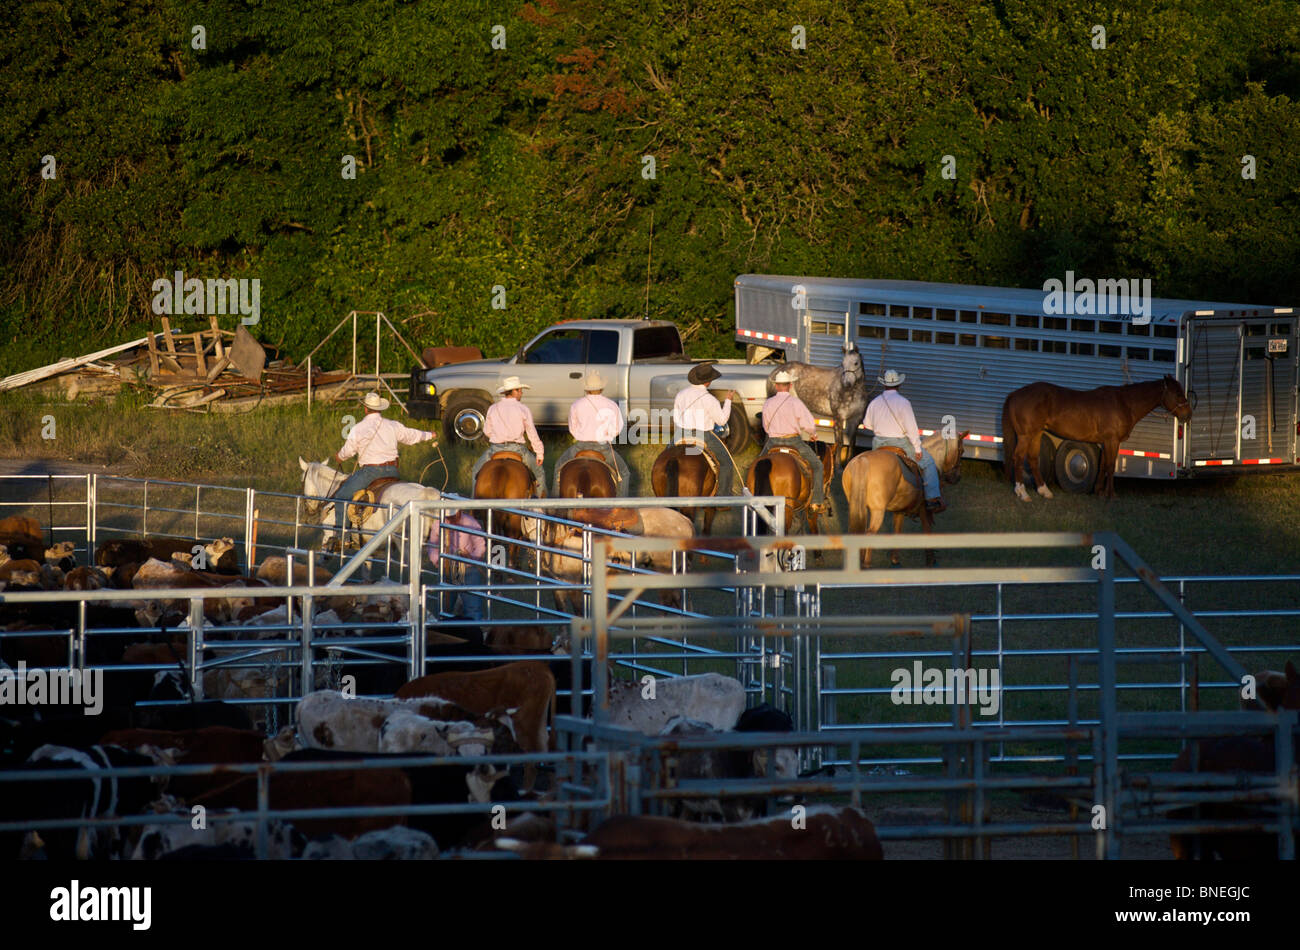 Cowboy members of PRCA gearing up backstage for rodeo event in Bridgeport, Texas, USA - Stock Image